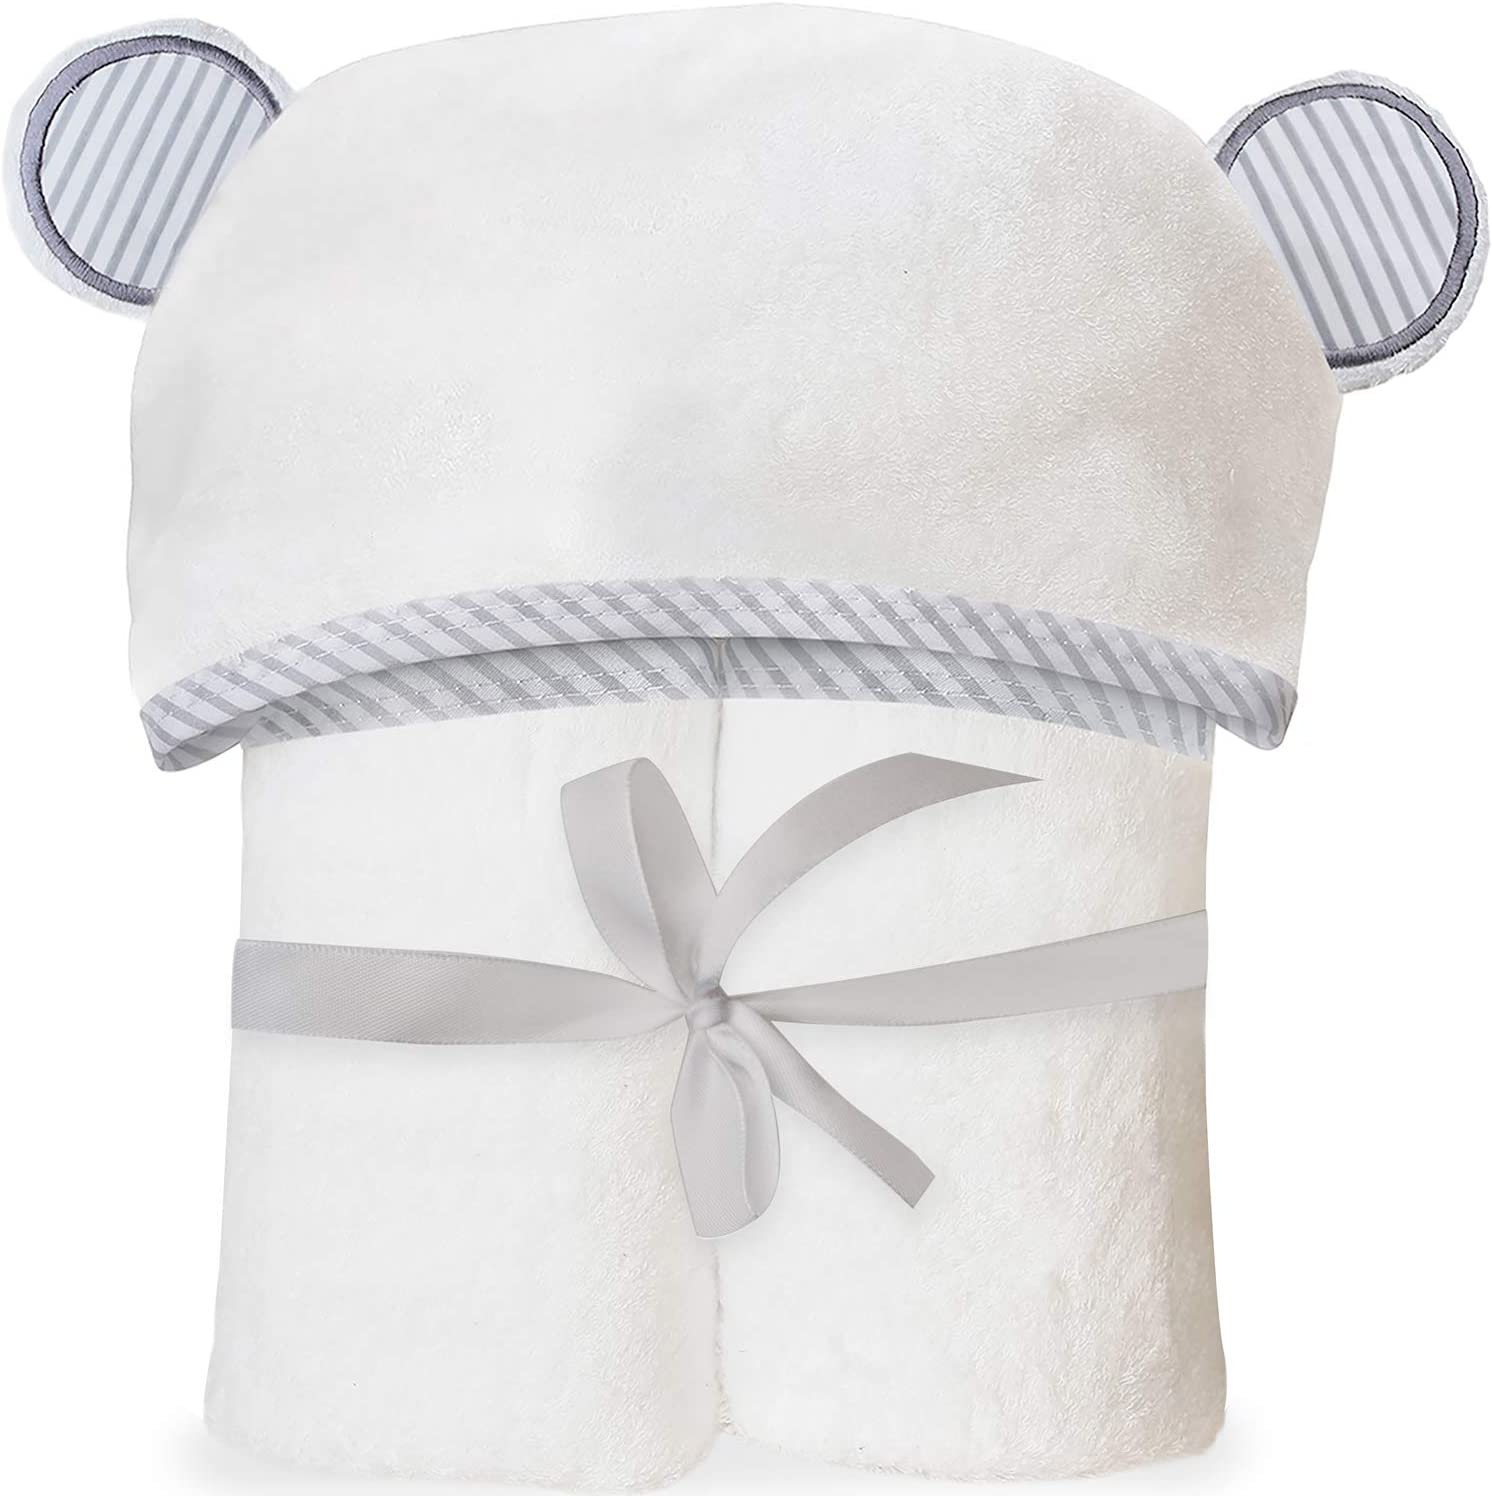 Top 15 Best Baby Towels And Washcloths (2020 Reviews & Buying Guide) 4